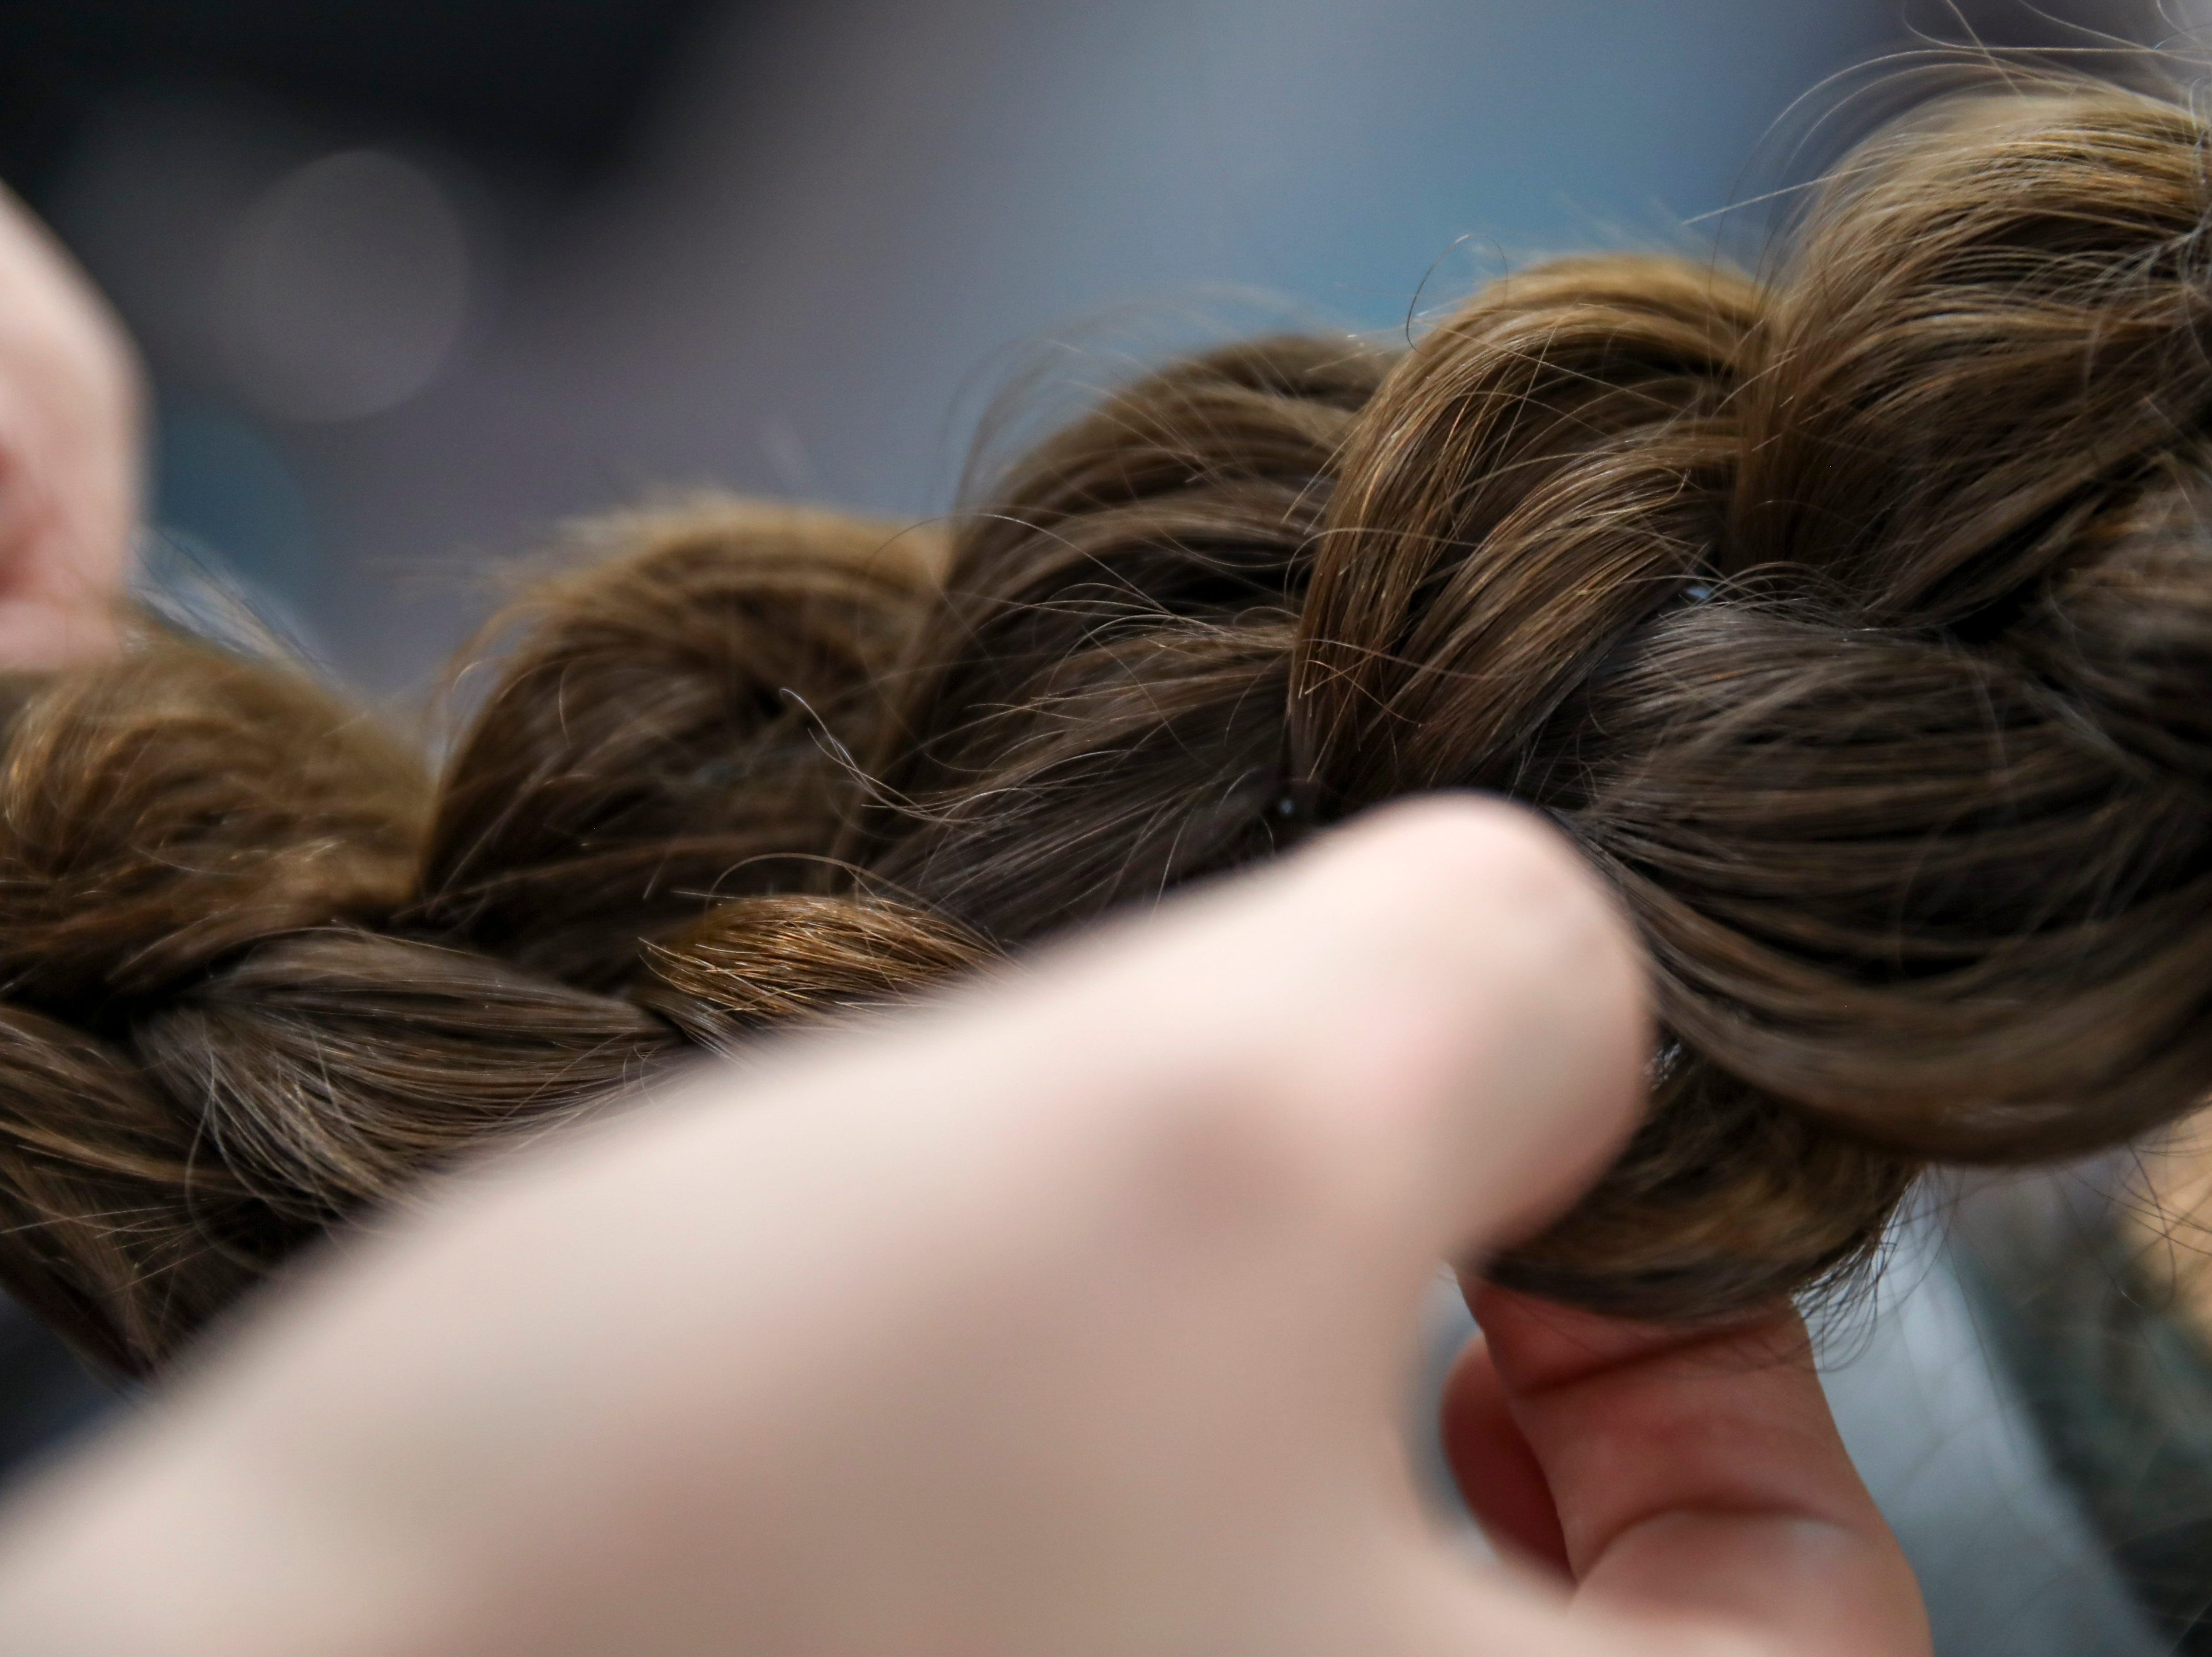 Christina West, a stylist at Tiffany's, braids the hair of Mia Lopez at Tiffany's Hair Spa in Clarksville, Tenn., on Saturday, May 4, 2019.